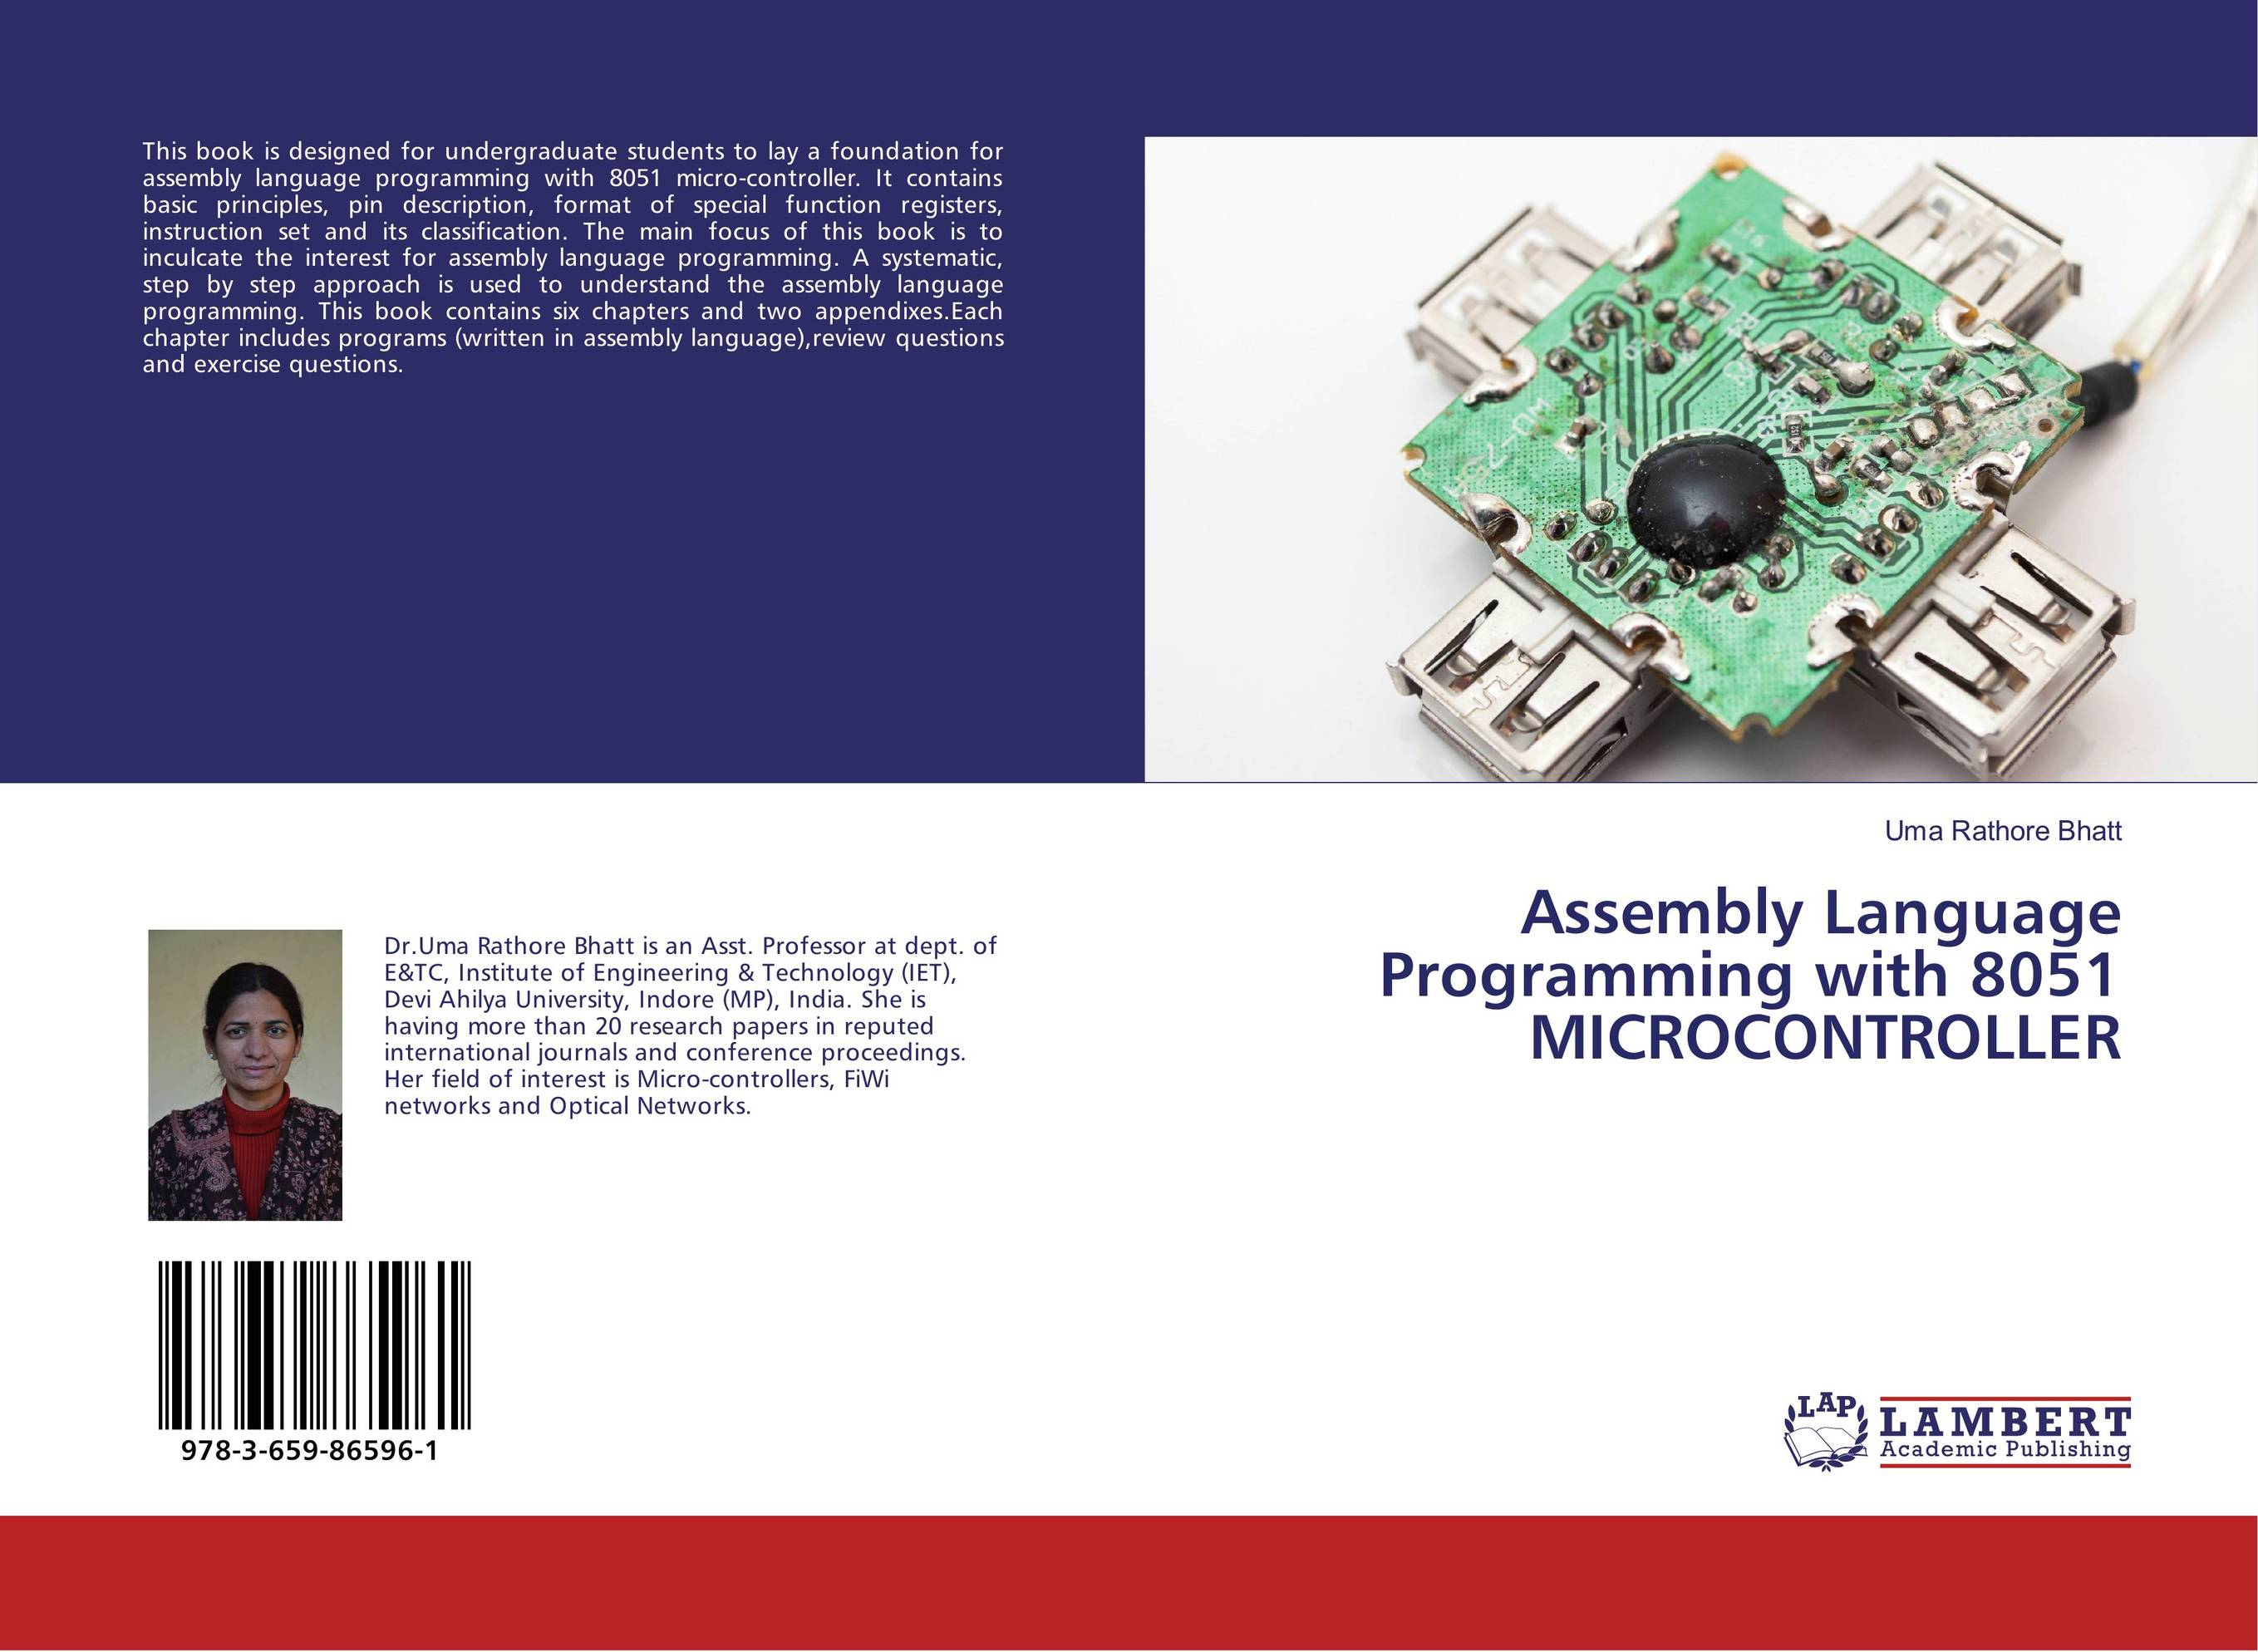 Assembly Language Programming with 8051 MICROCONTROLLER 1 100 age 2 normal mg up to the basic type of assembly model for assembly model